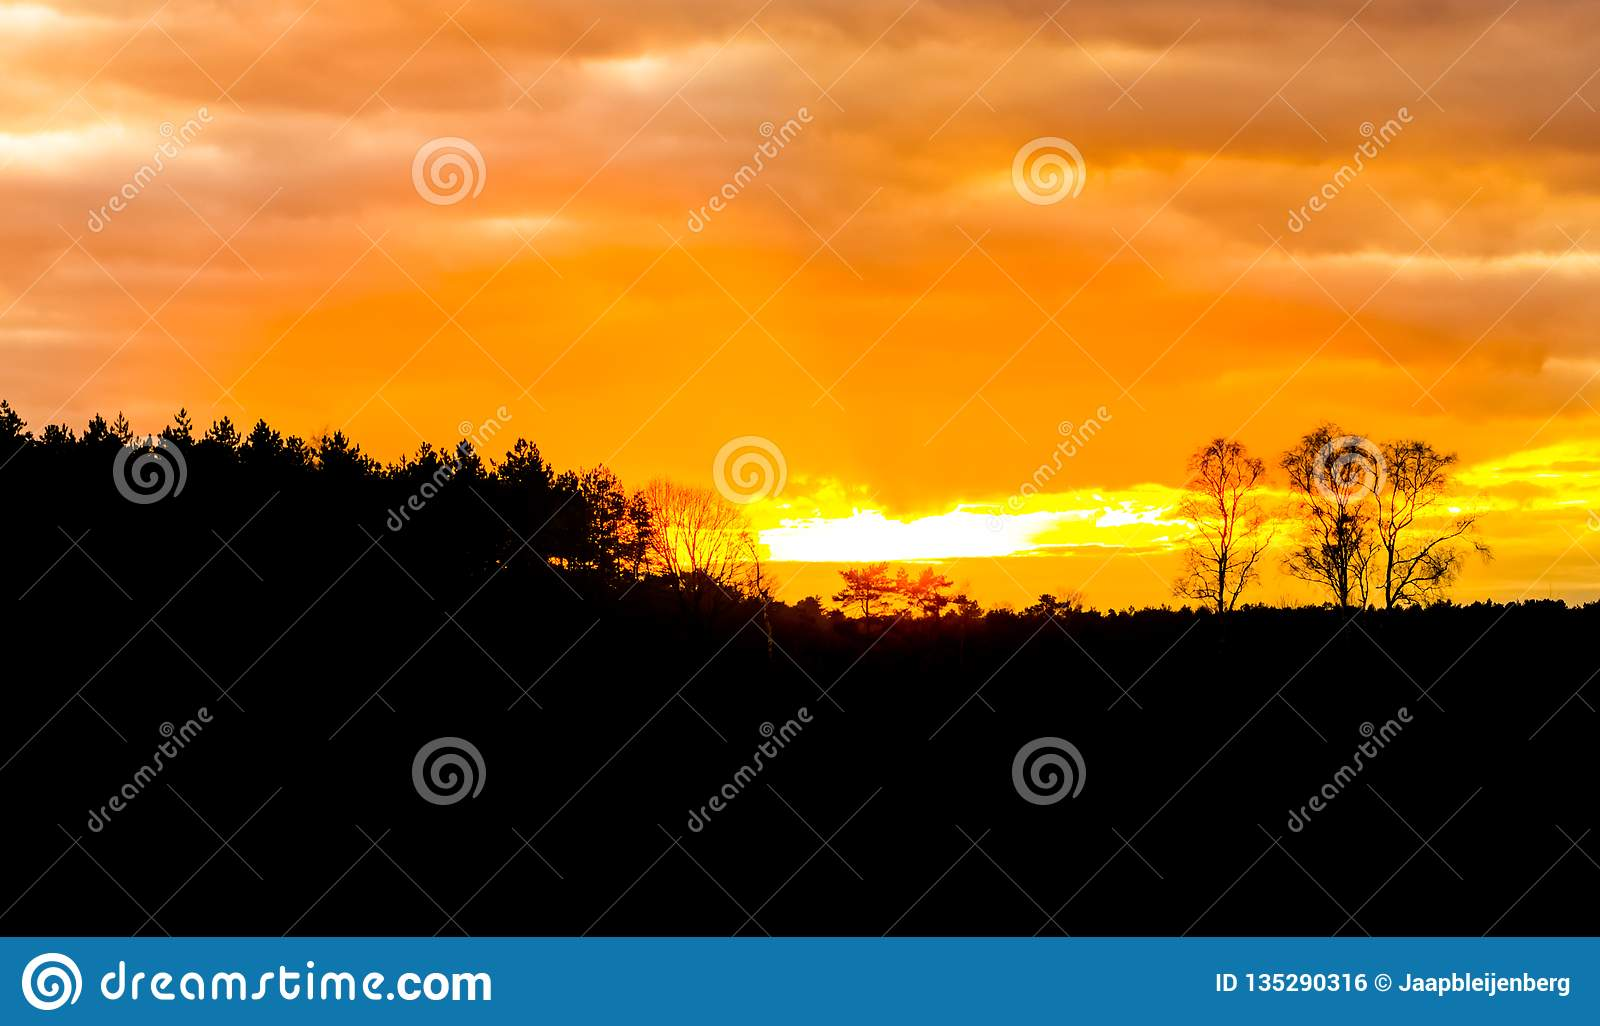 Heather and forest landscape dark silhouette at sunset, vibrant orange sky and clouds because of sundown